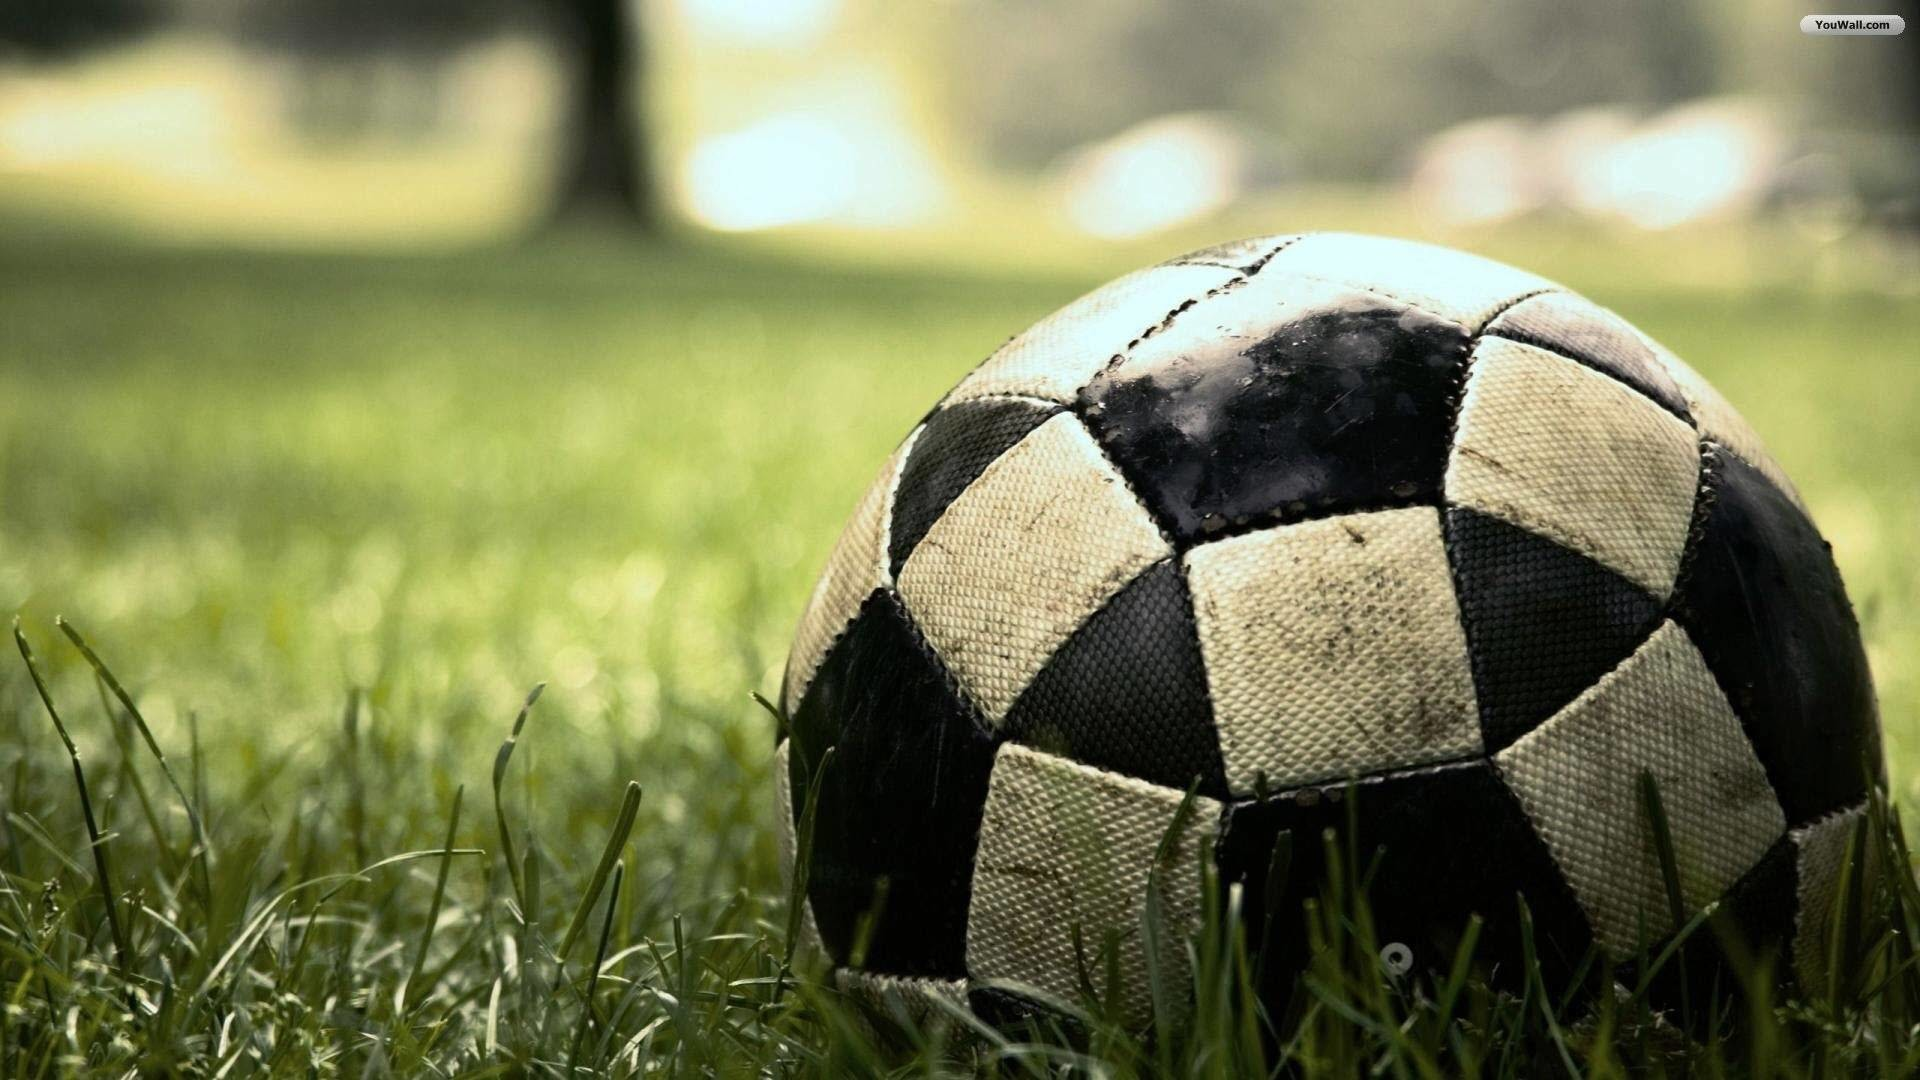 Soccer Wallpaper 2013 Hd Images & Pictures – Becuo